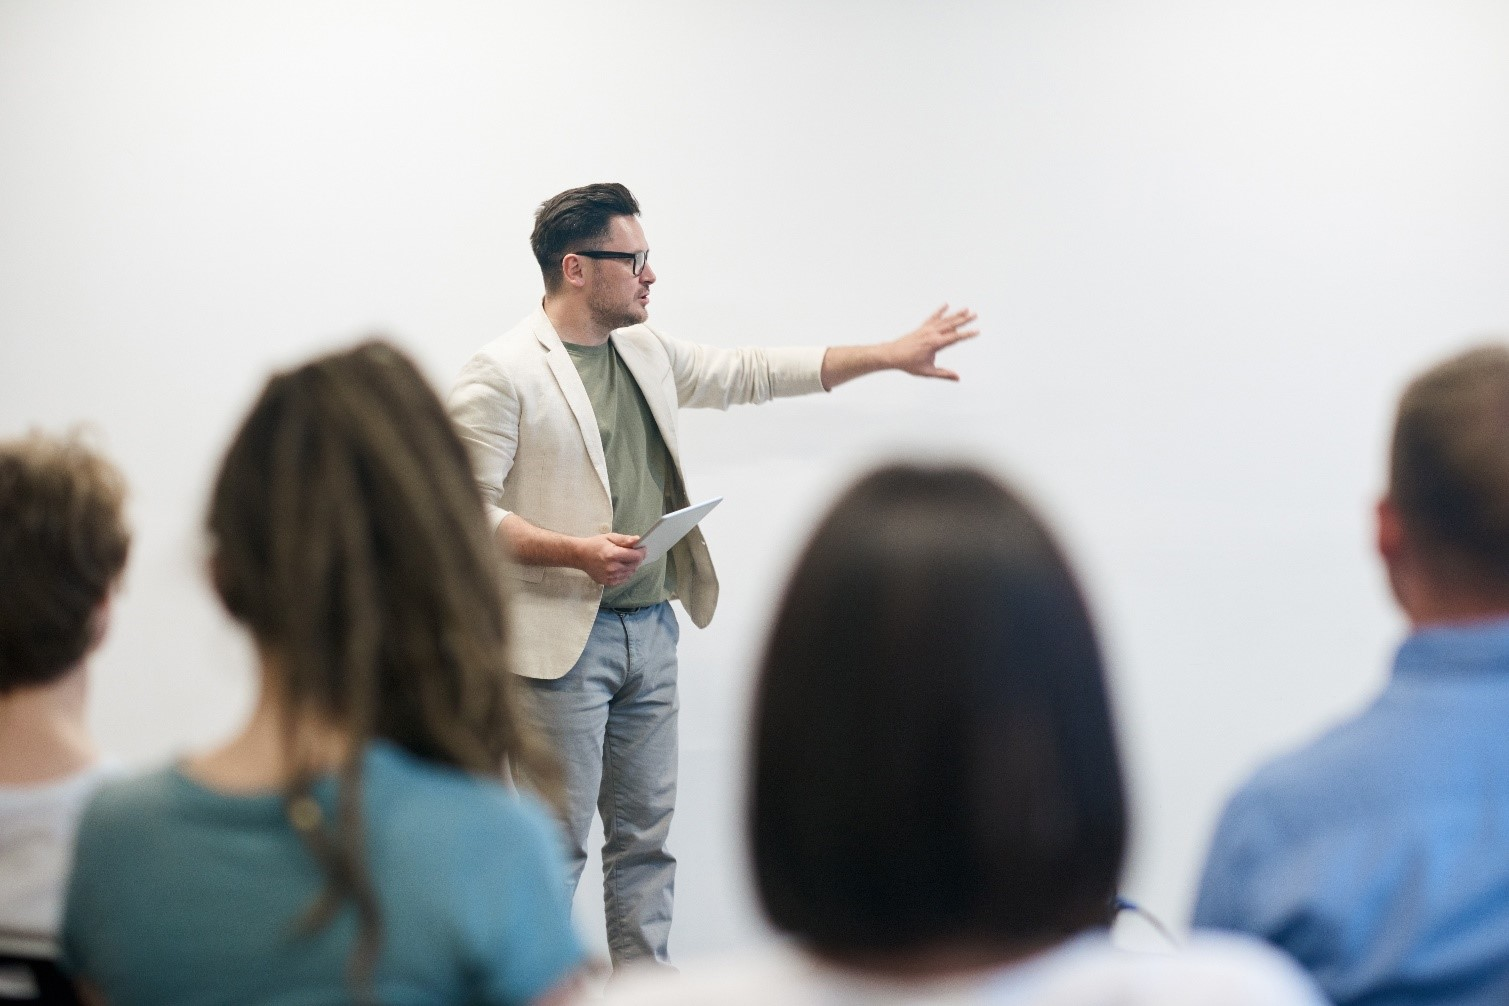 A man standing in front of an audience presenting enthusiastically